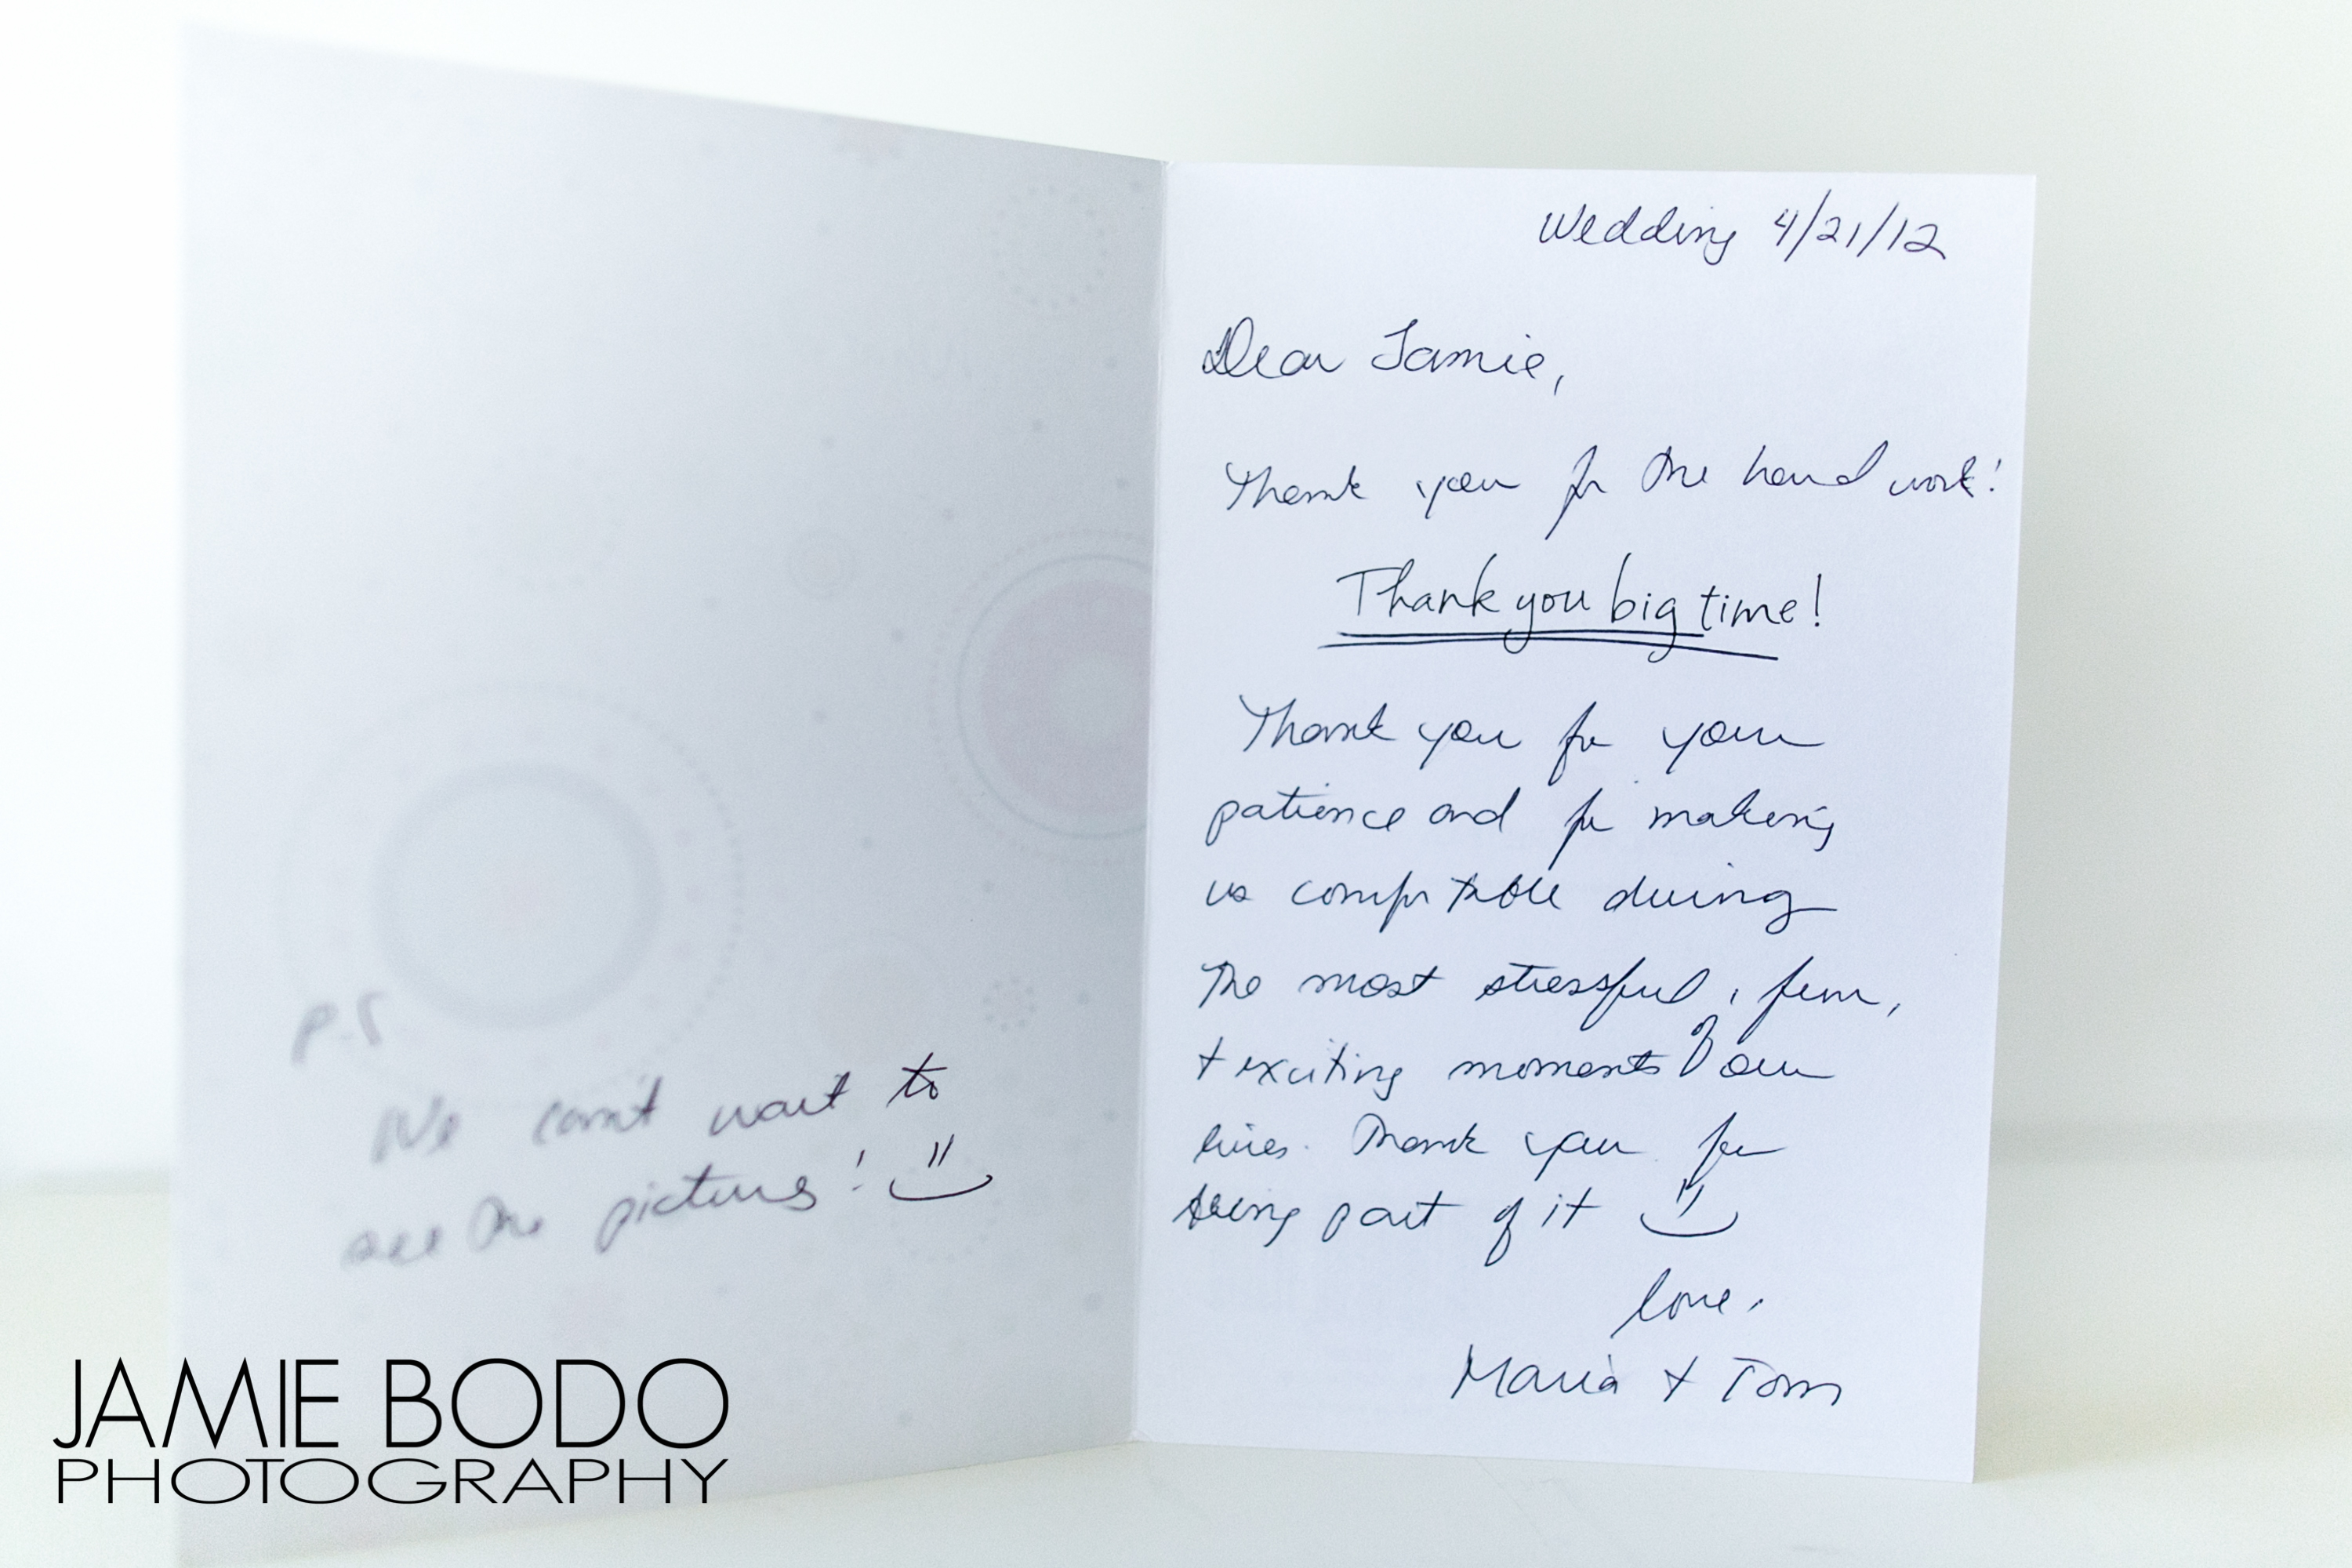 Client Thank You Cards